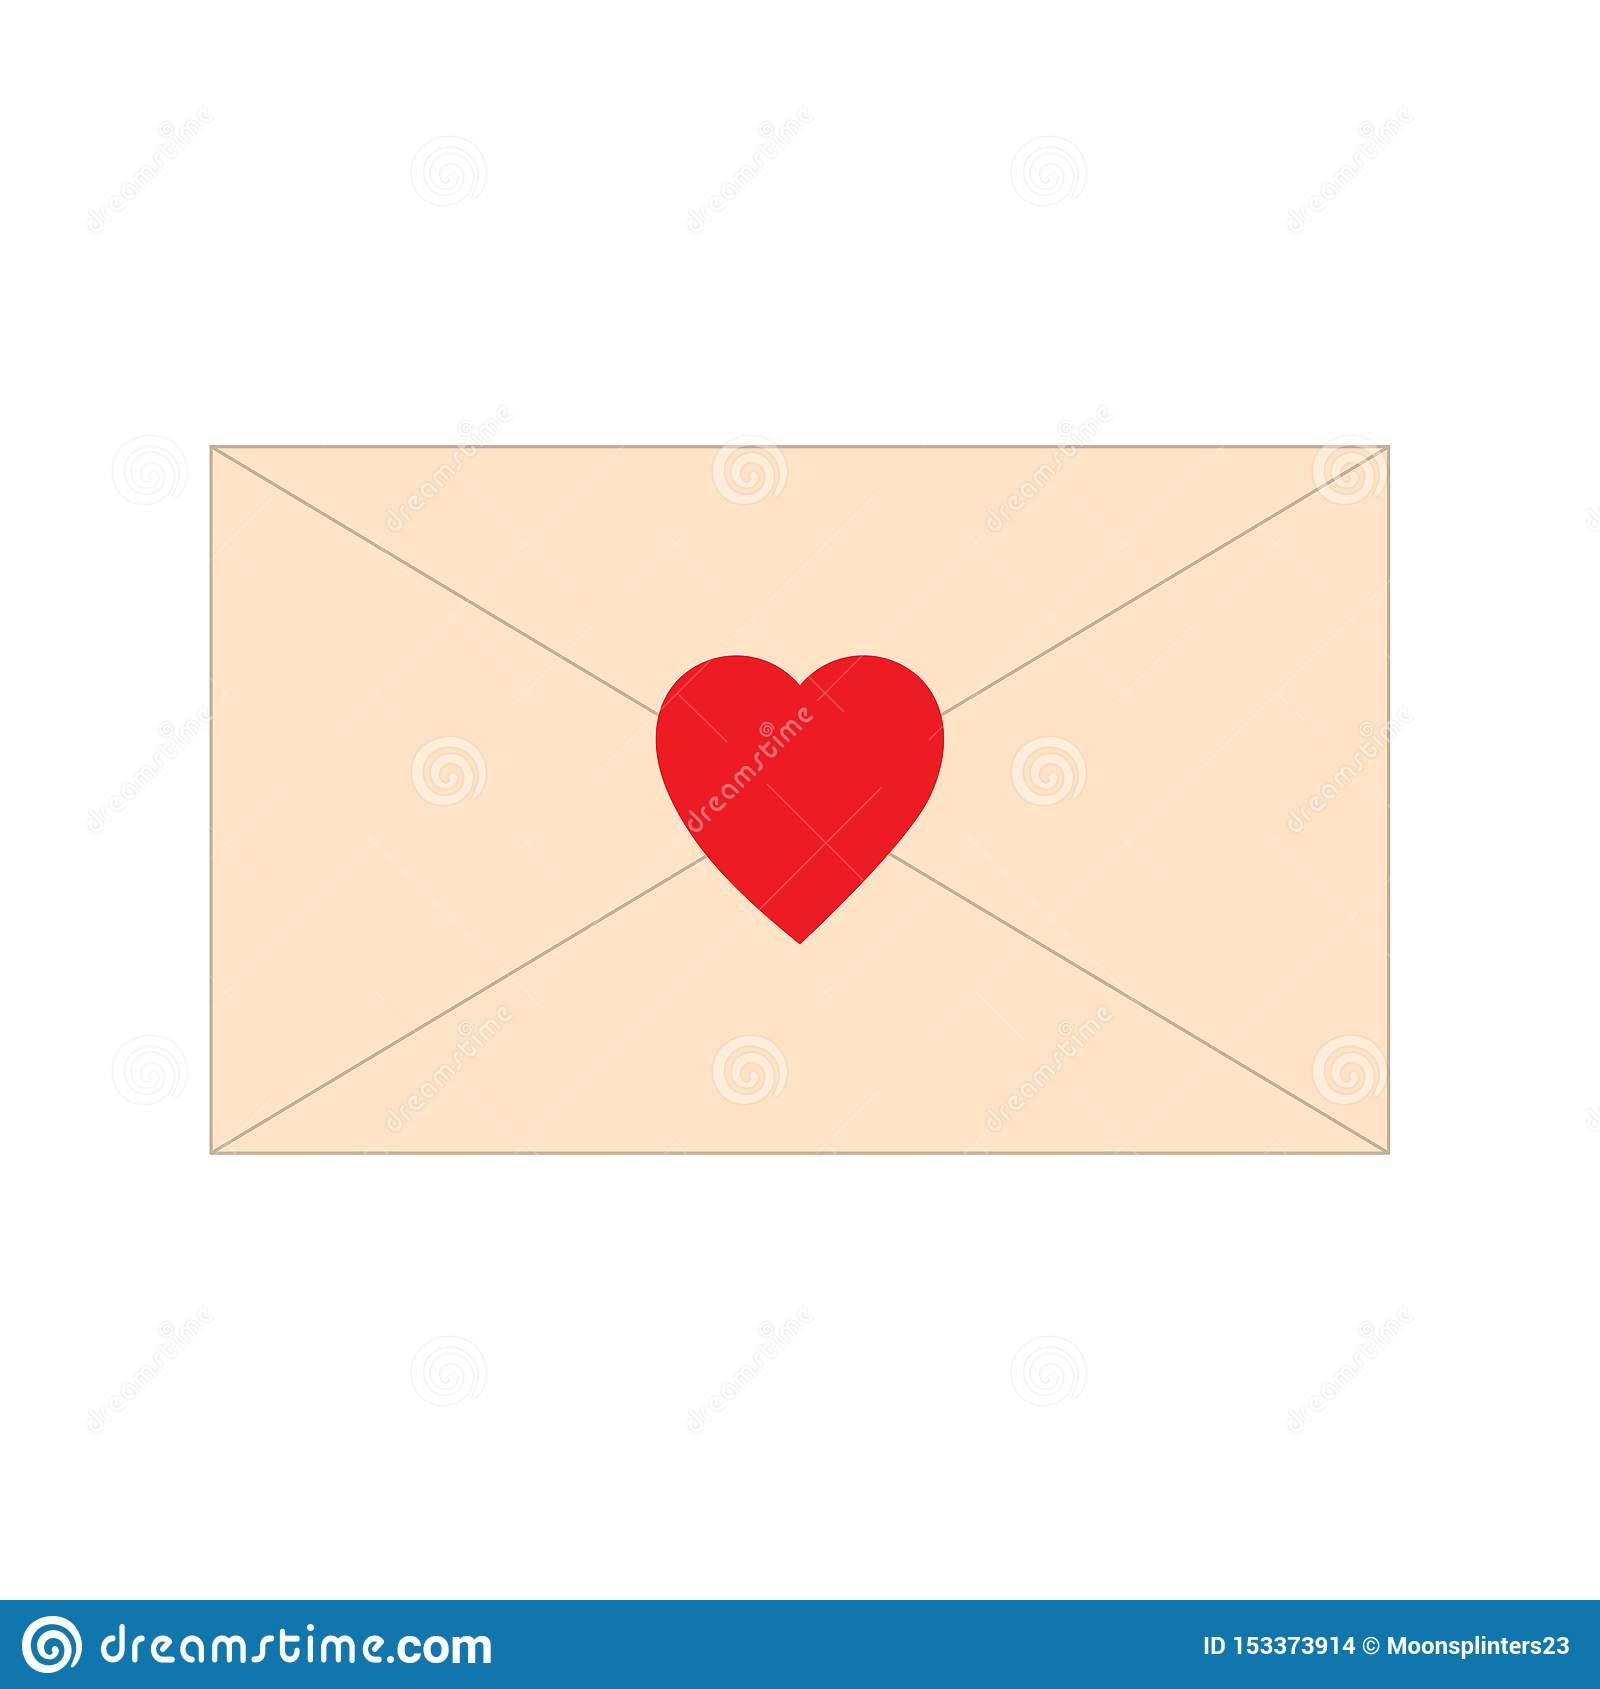 Paper letter, envelope, with red heart shape icon. Love mail message vector illustration. Romance symbol sign